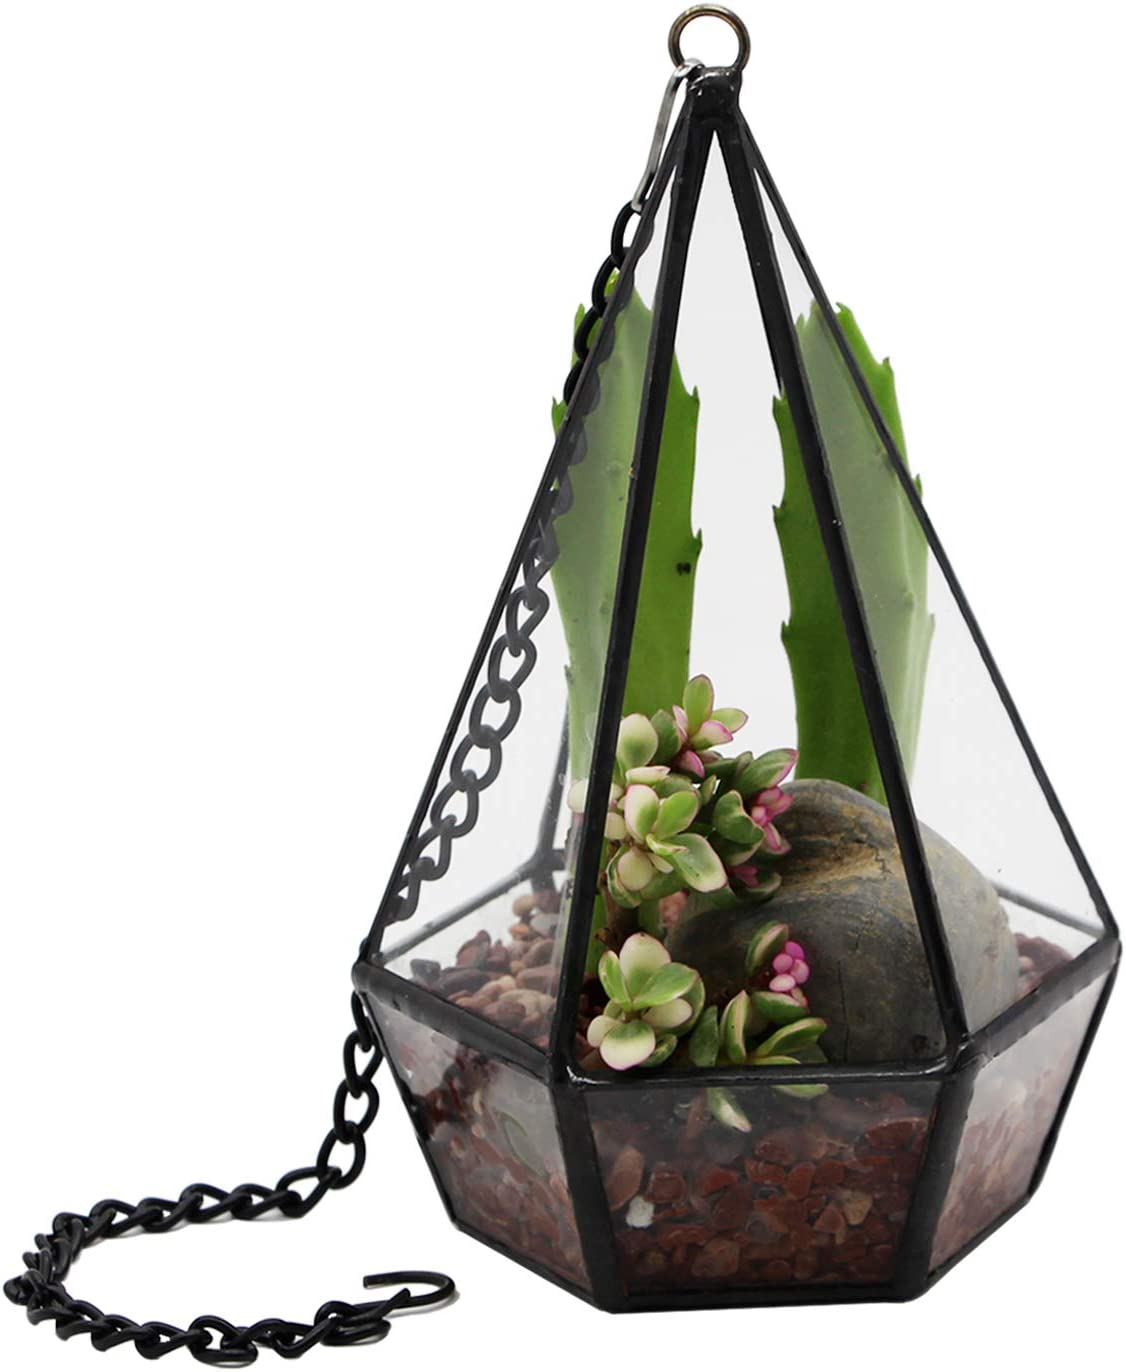 Kimdio Wall Hanging Geometric Terrarium Modern Indoor Opening Polyhedron Tabletop Window Sill Balcony Decorative Plant Holder Display Box Succulent Moss Flower Pot Containers DIY